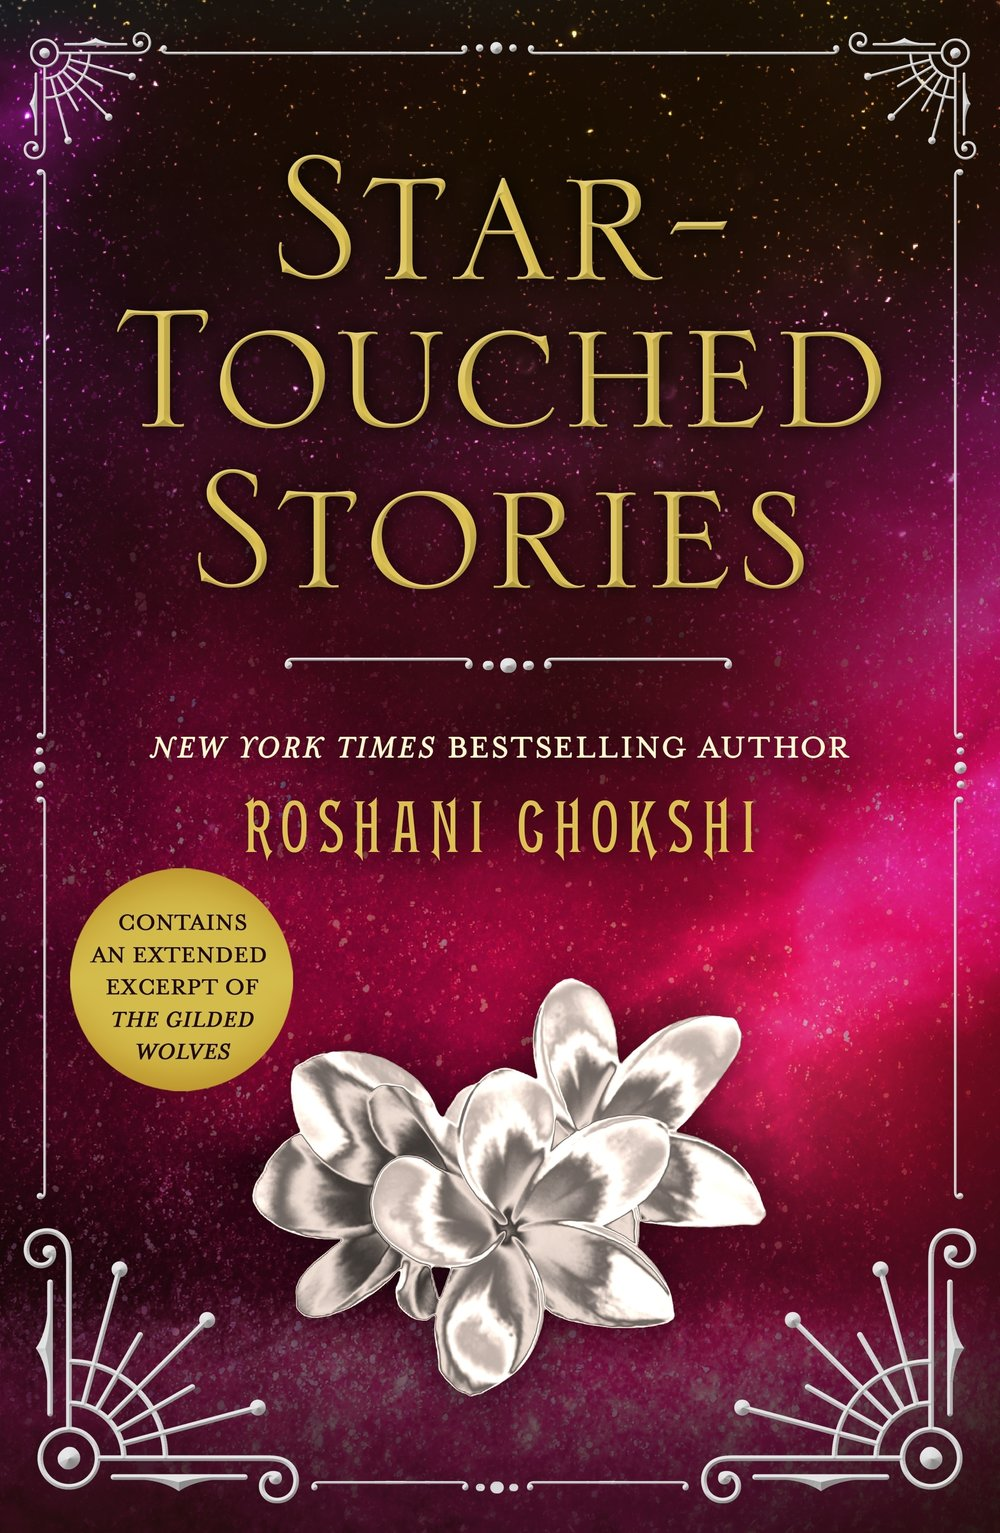 Star Touched Stories_cover image.jpg